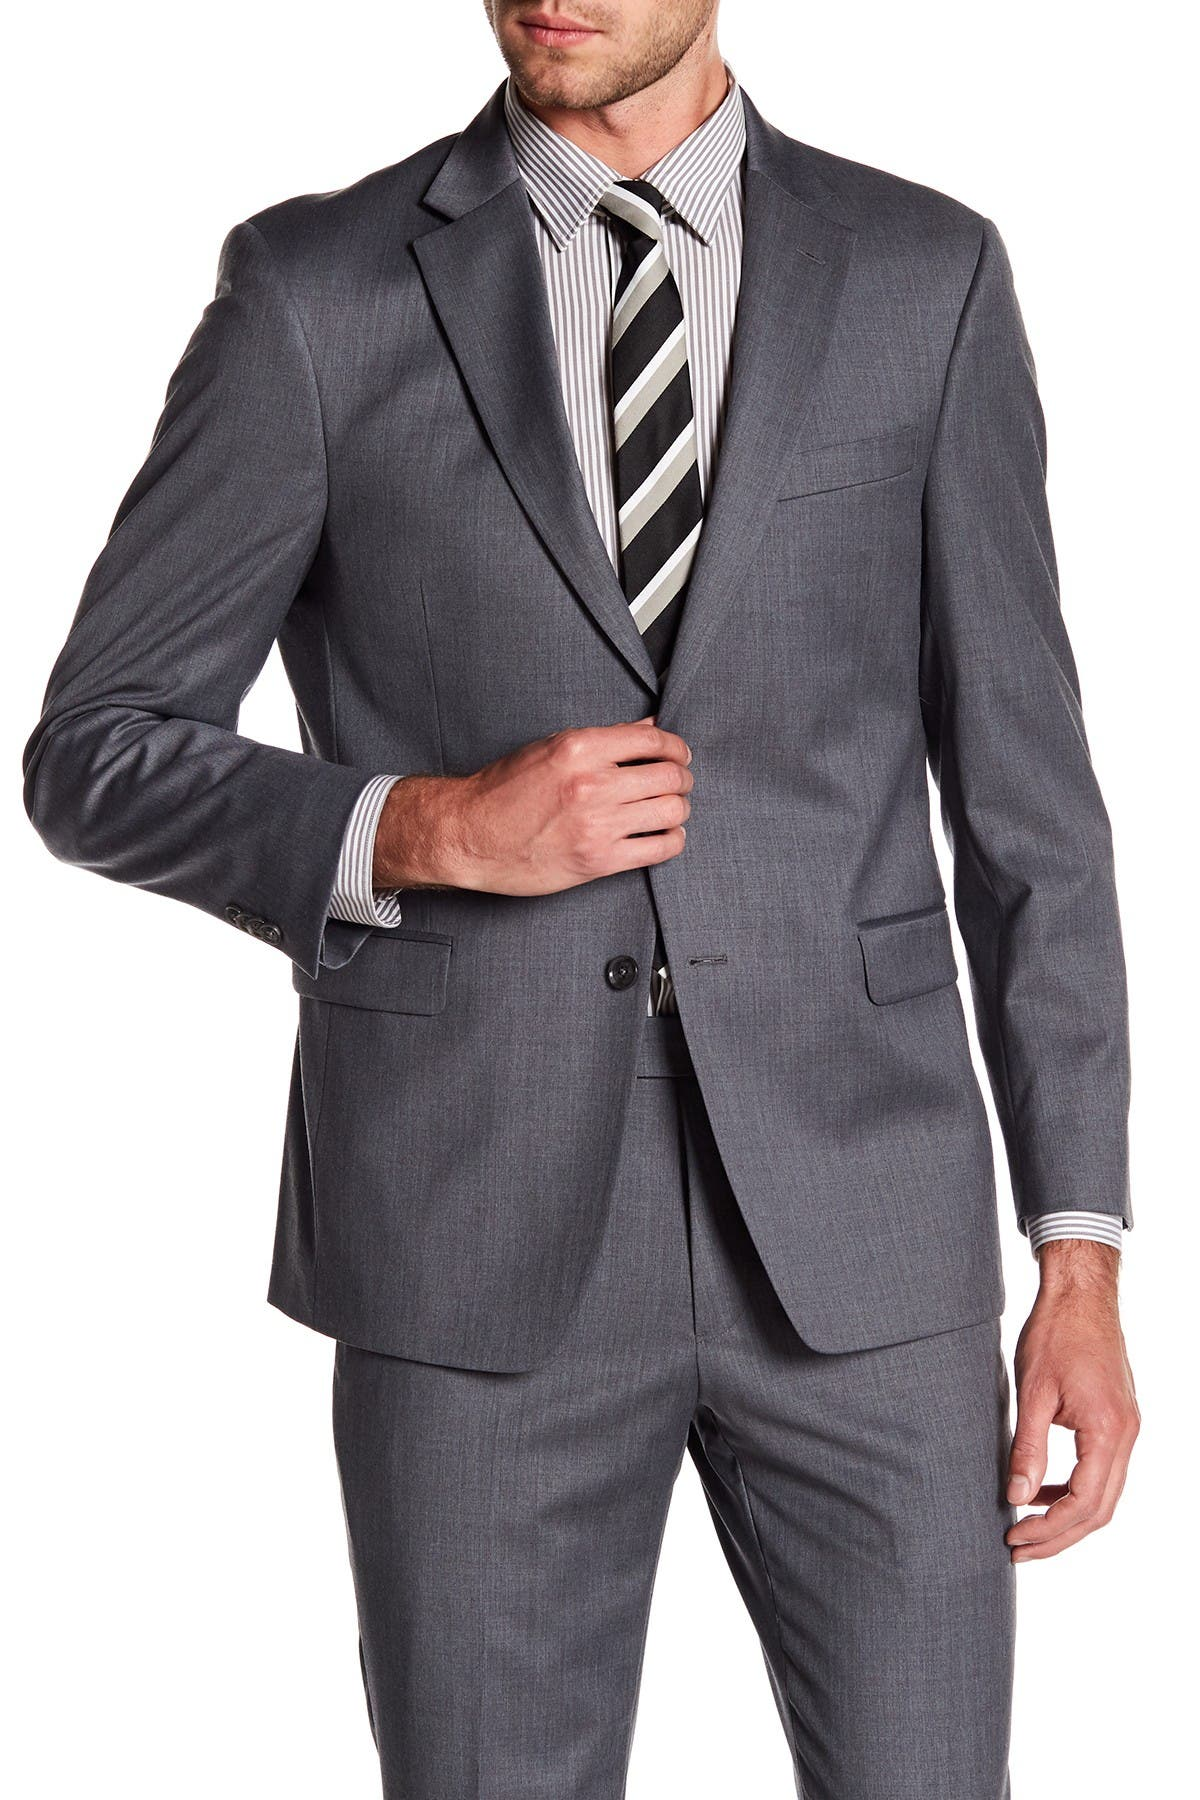 Image of Tommy Hilfiger Adams Modern Fit TH Flex Performance Wool Blend Suit Separates Jacket - Extended Sizes Available